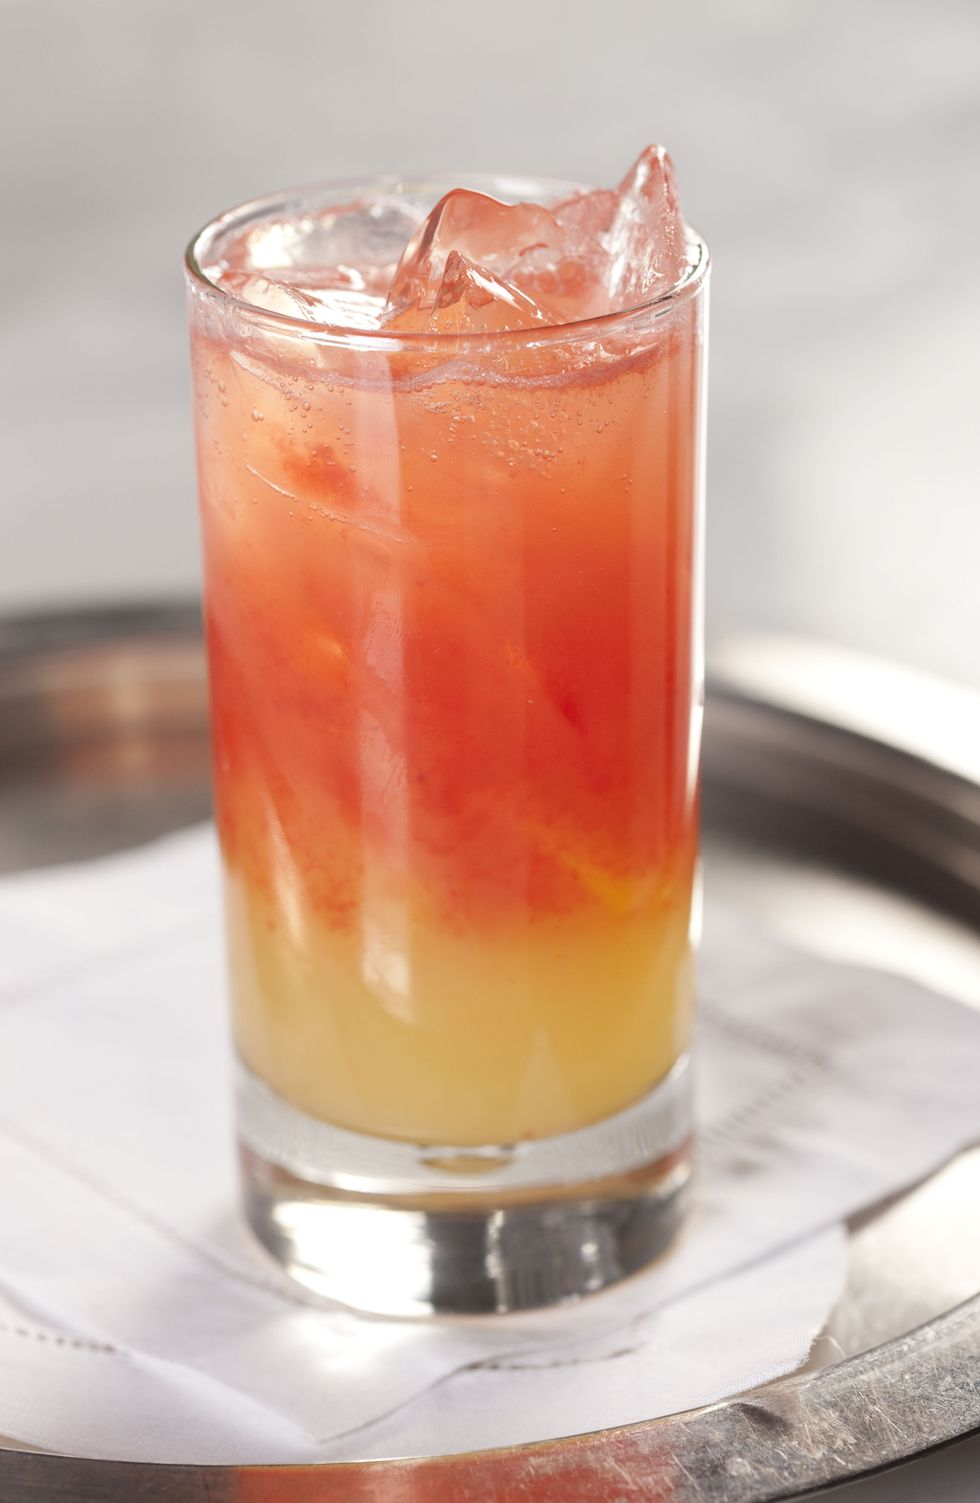 A pink and golden hued drink in a tall glass with ice